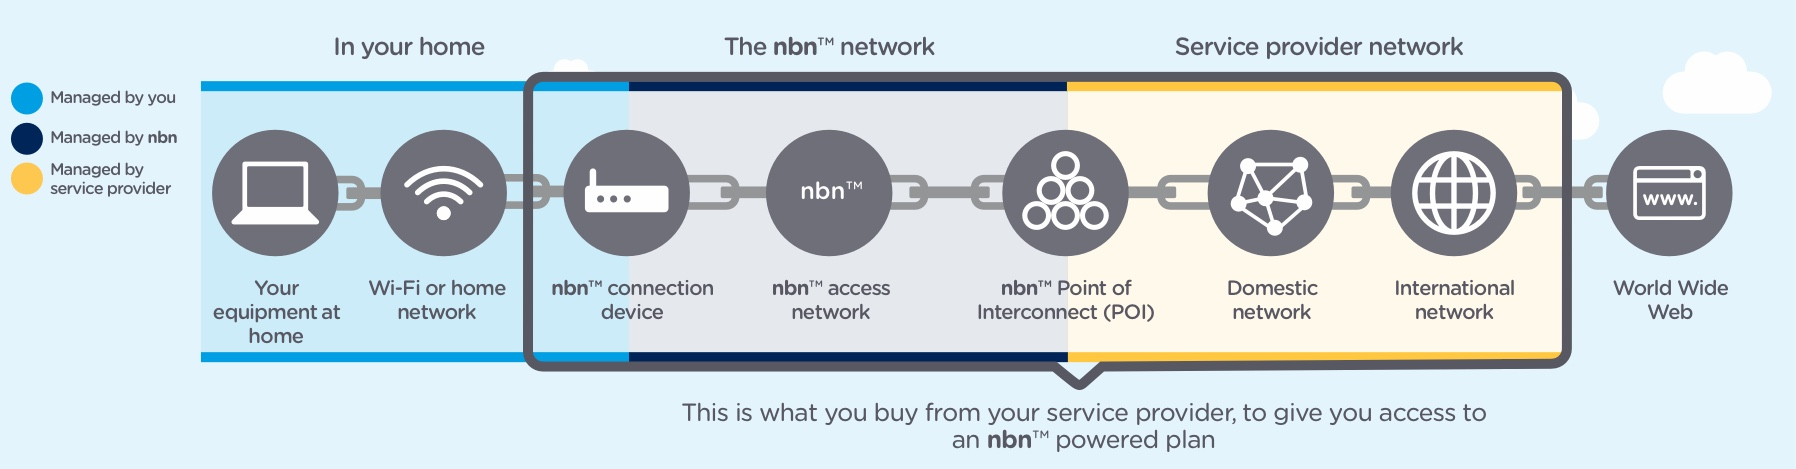 Frequent questions about connecting to the nbn network nbn the three main nbn network wholesale speed tiers sold to rsps are nbn 25 nbn 50 and nbn 100 sciox Choice Image